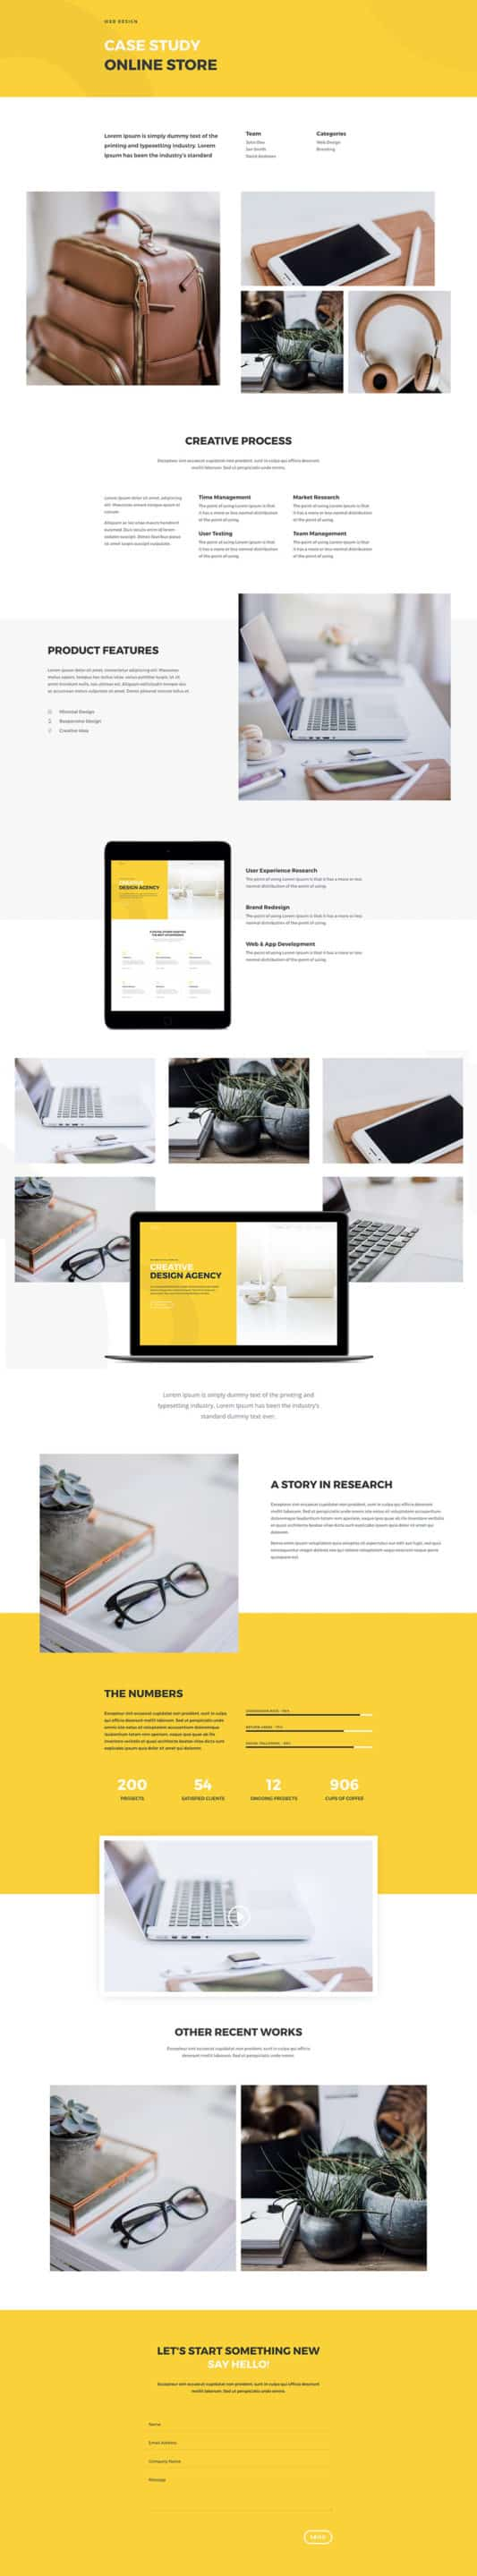 Design Agency Web Design 3